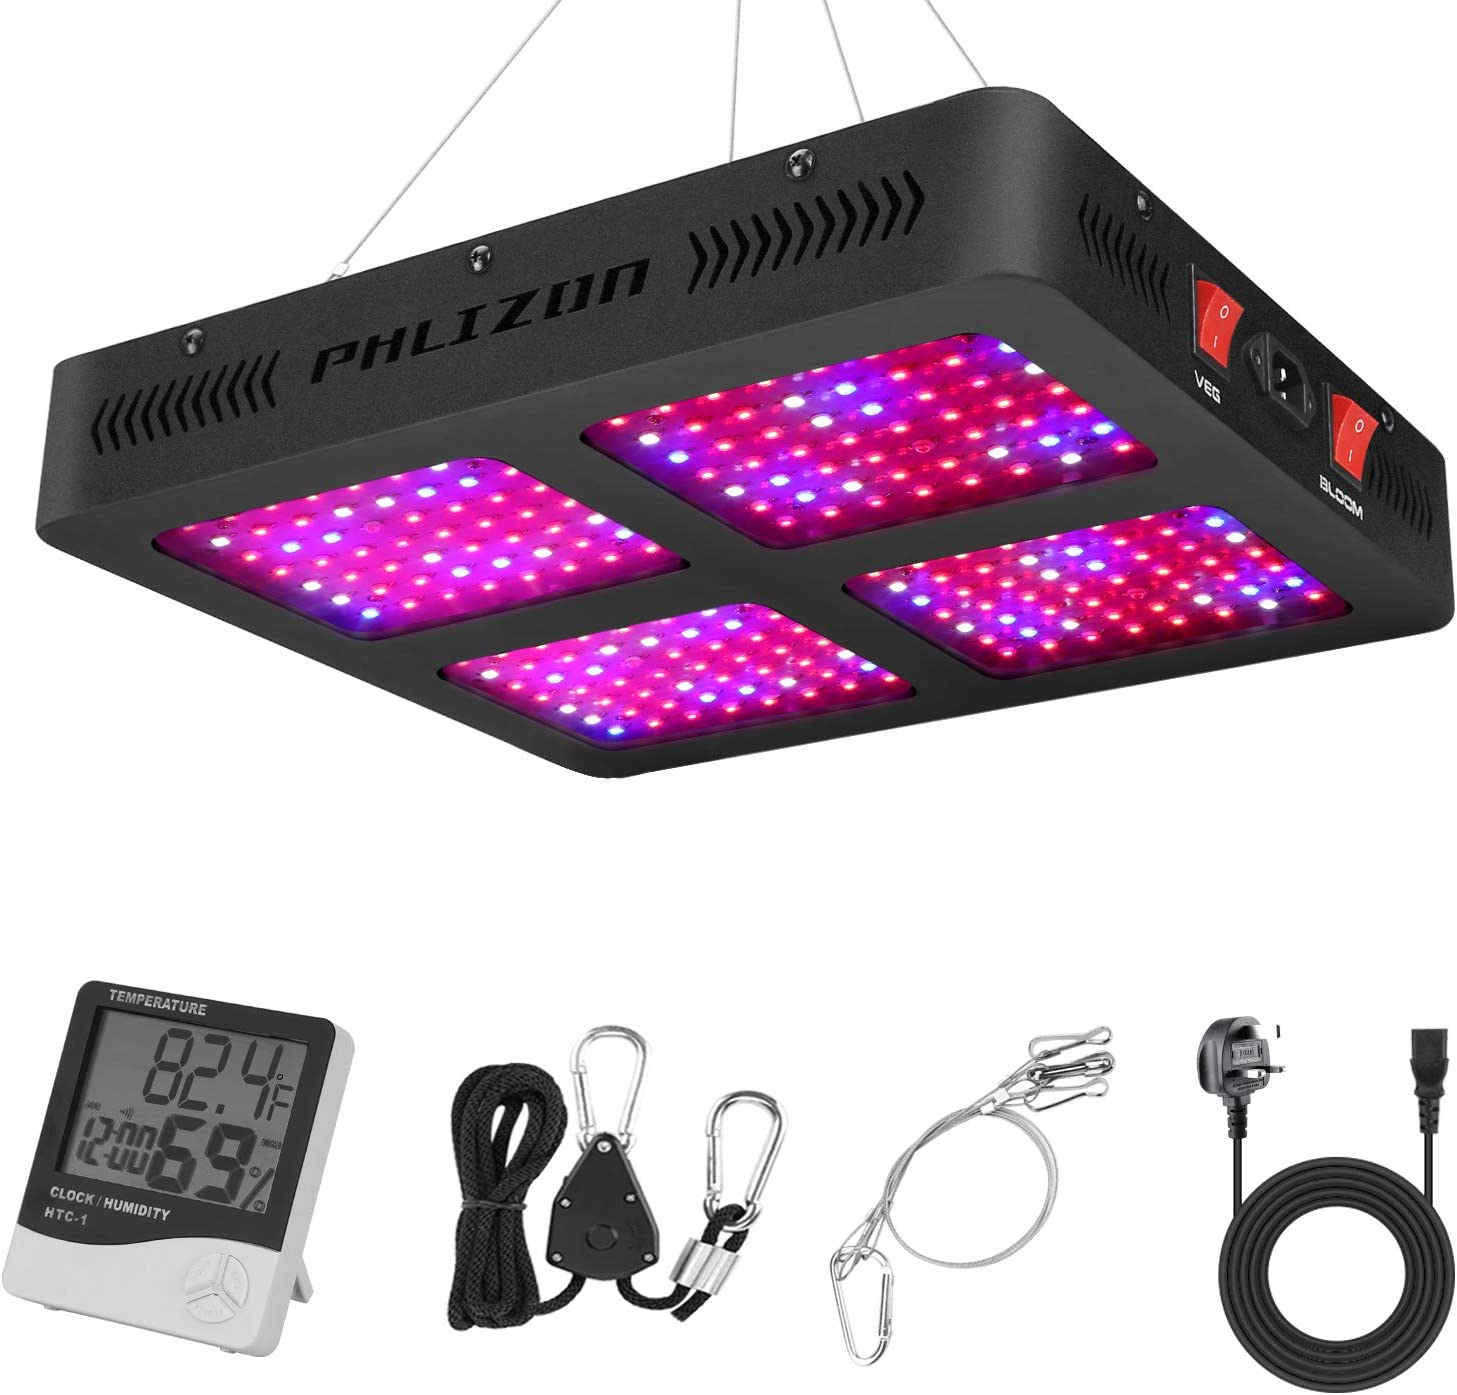 Phlizon 2200W Double Switch Series Plant LED Grow Light for Indoor Plants Greenhouse Lamp Full Spectrum Growing LED Light for Veg Bloom with Thermometer Adjustable Rope (Actual Power 440watt)